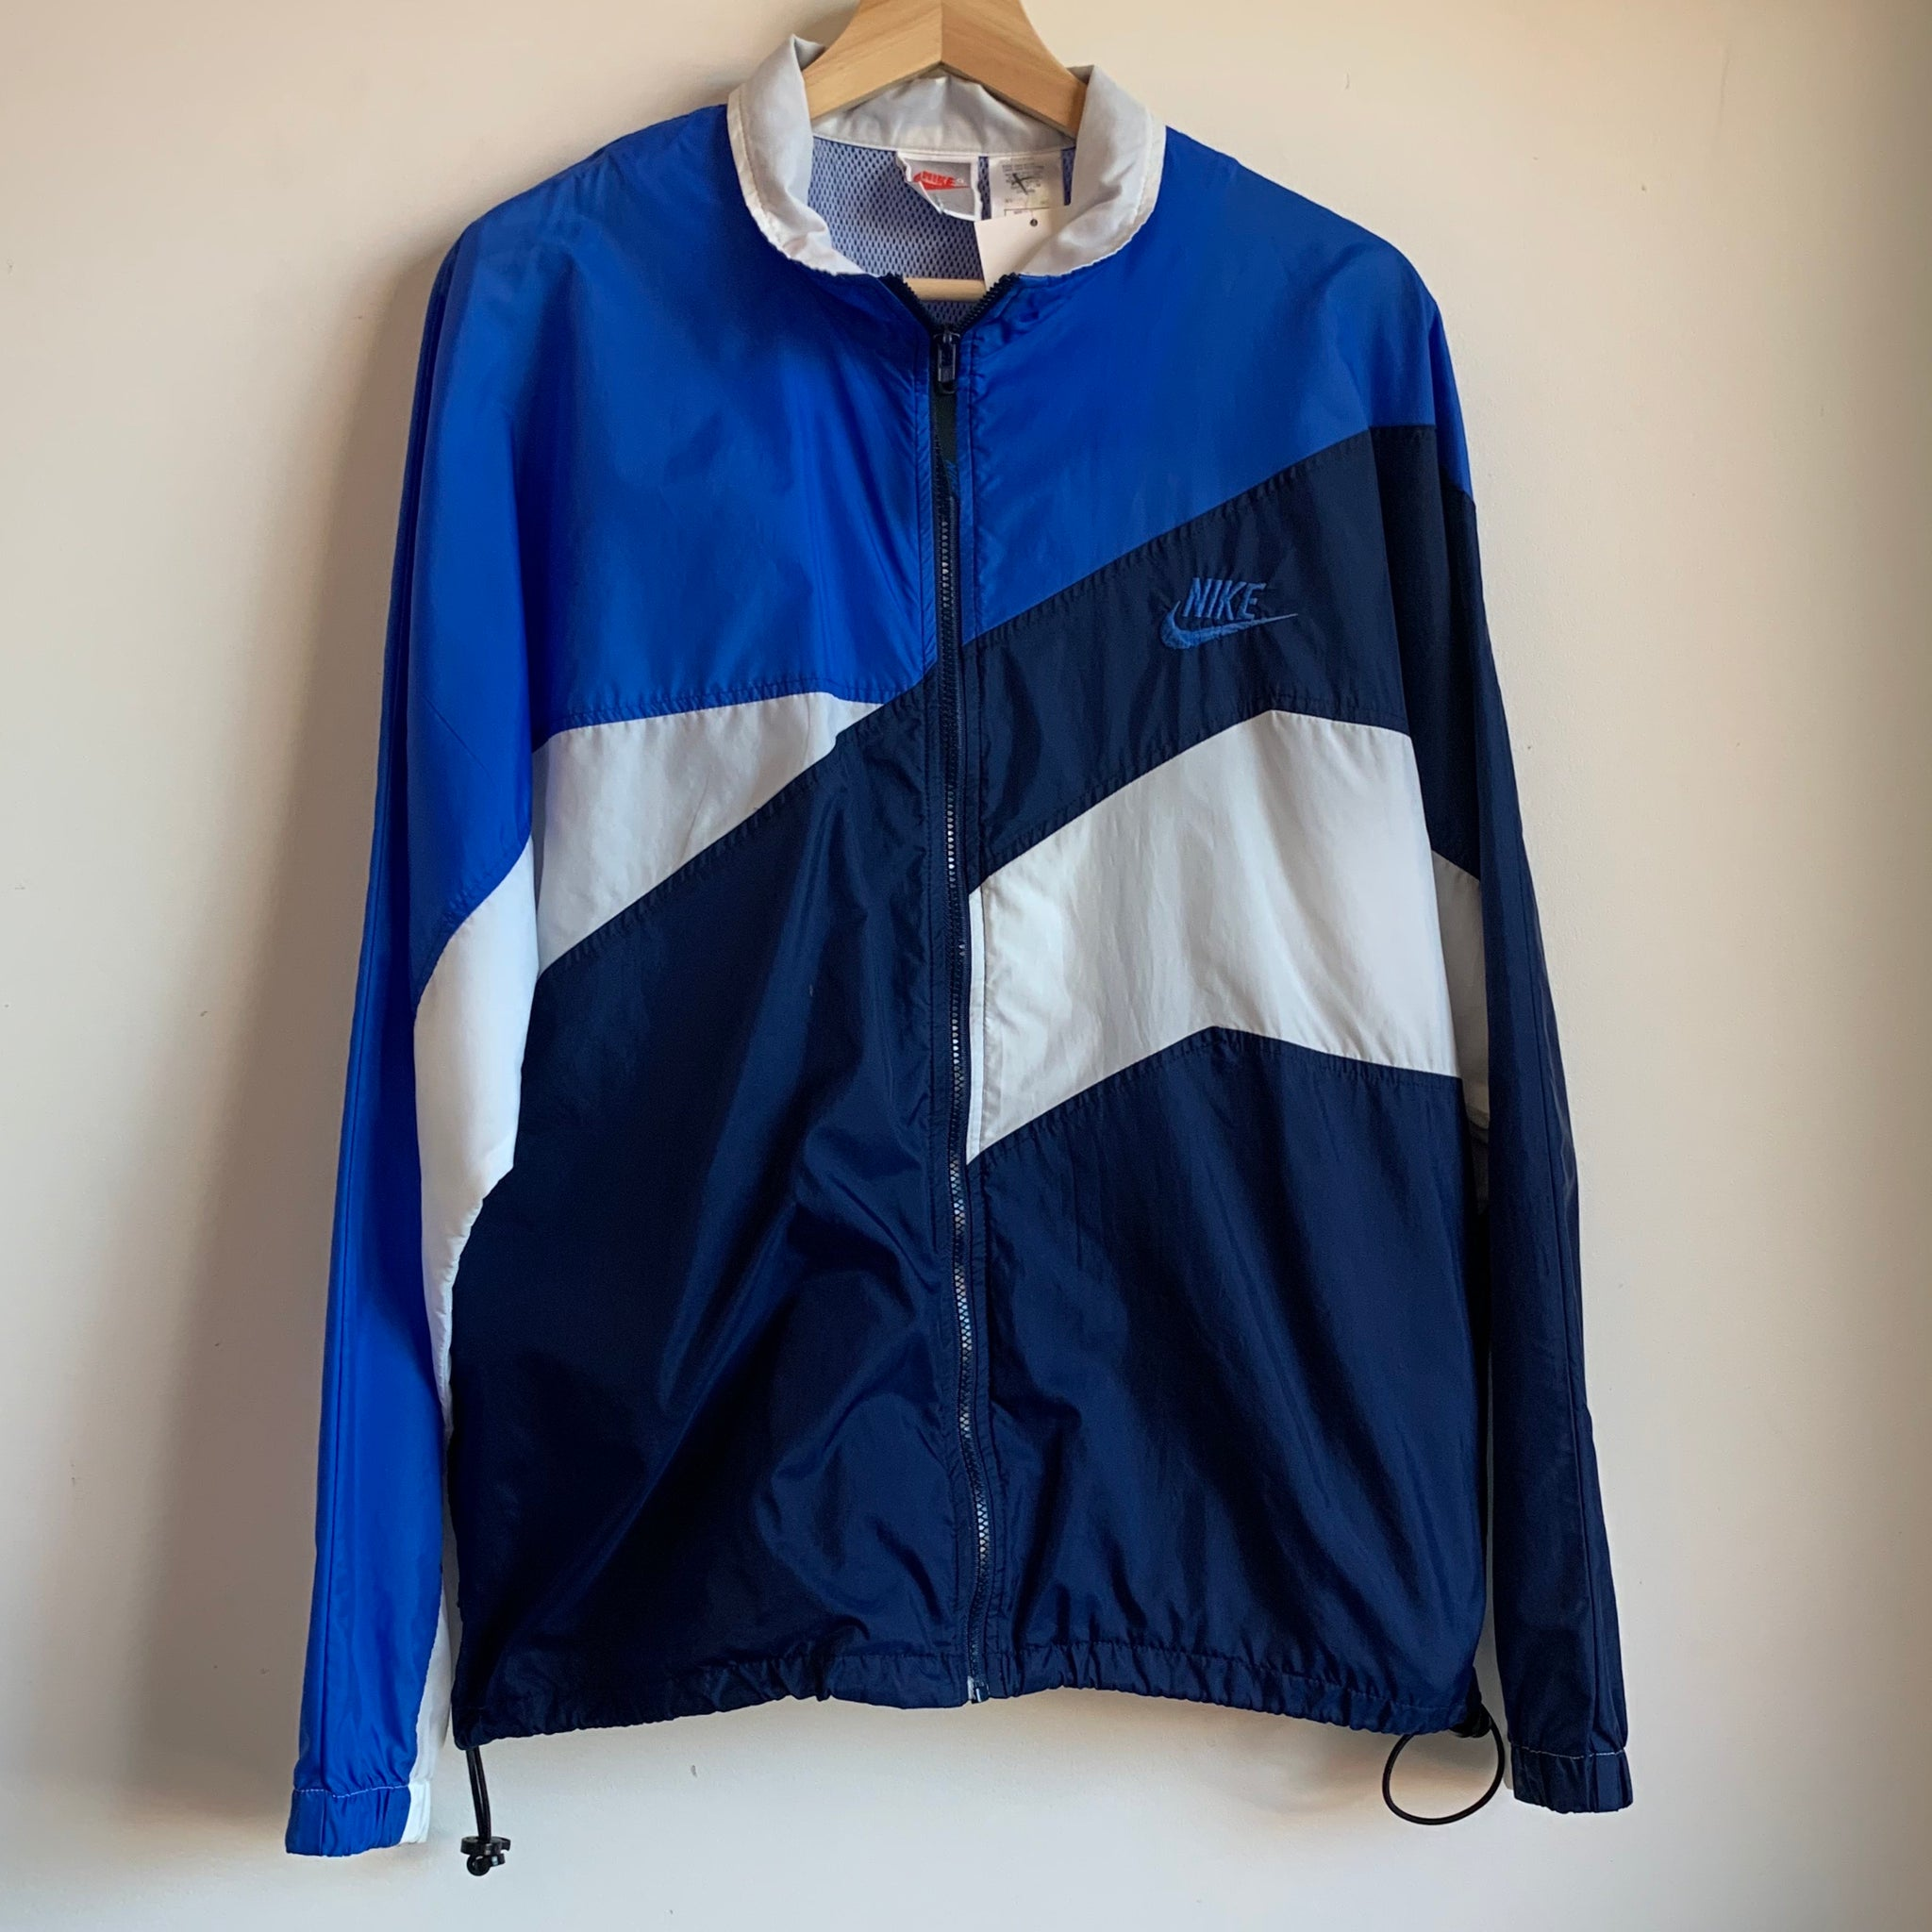 Nike Gray Tag Navy/Blue/White Windbreaker Jacket